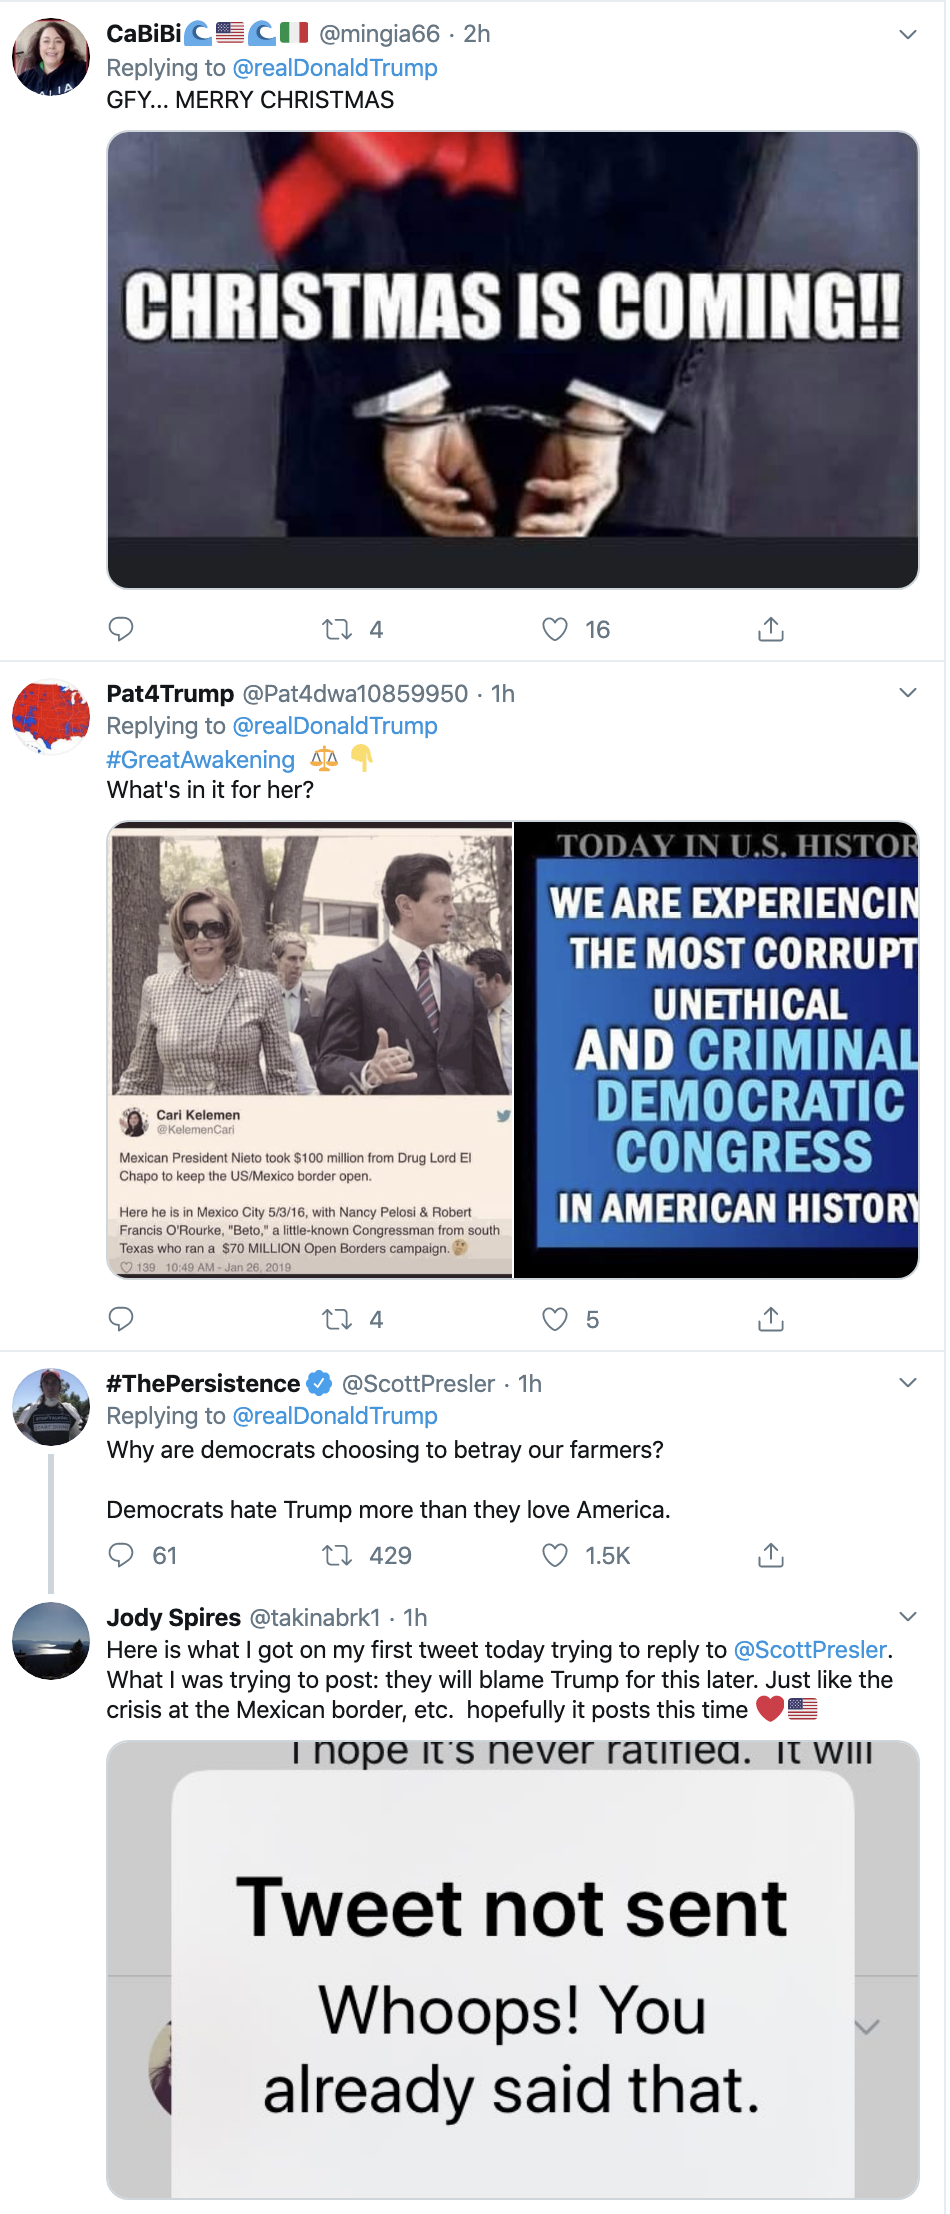 Screen-Shot-2019-10-22-at-10.37.50-AM Trump Fires Off Erratic Weaponized Twitter Bombs Tuesday Corruption Crime Domestic Policy Donald Trump Economy Election 2016 Election 2020 Featured Foreign Policy Hillary Clinton Impeachment Investigation Media Military National Security Politics Racism Russia Social Media Top Stories